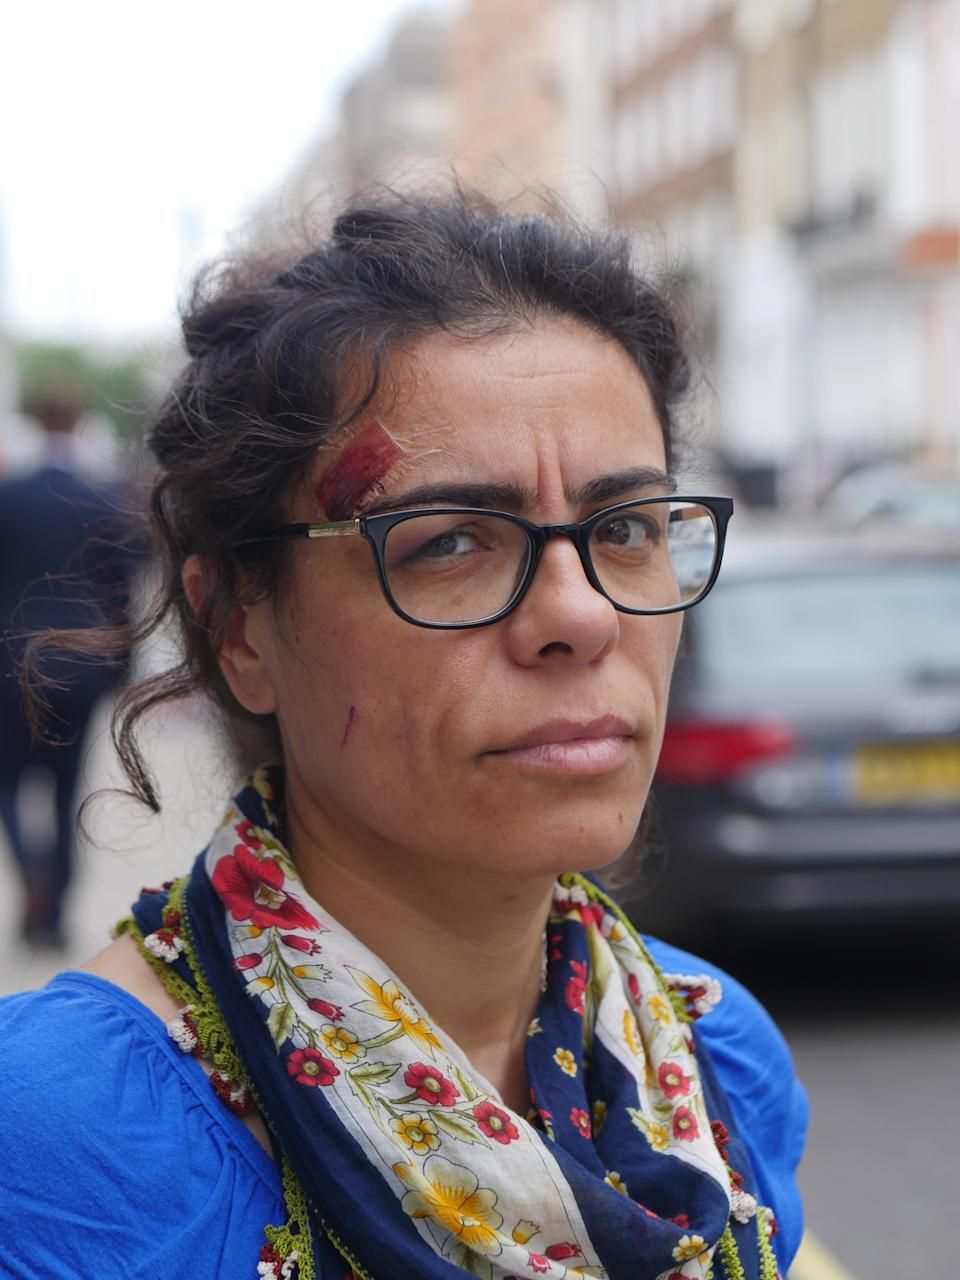 Hatun Tash, 39, an ex-Muslim who has converted to Christianity, was wearing a t-shirt of French satirical magazine Charlie Hebdo at the time of the attack. (Christian Concern)